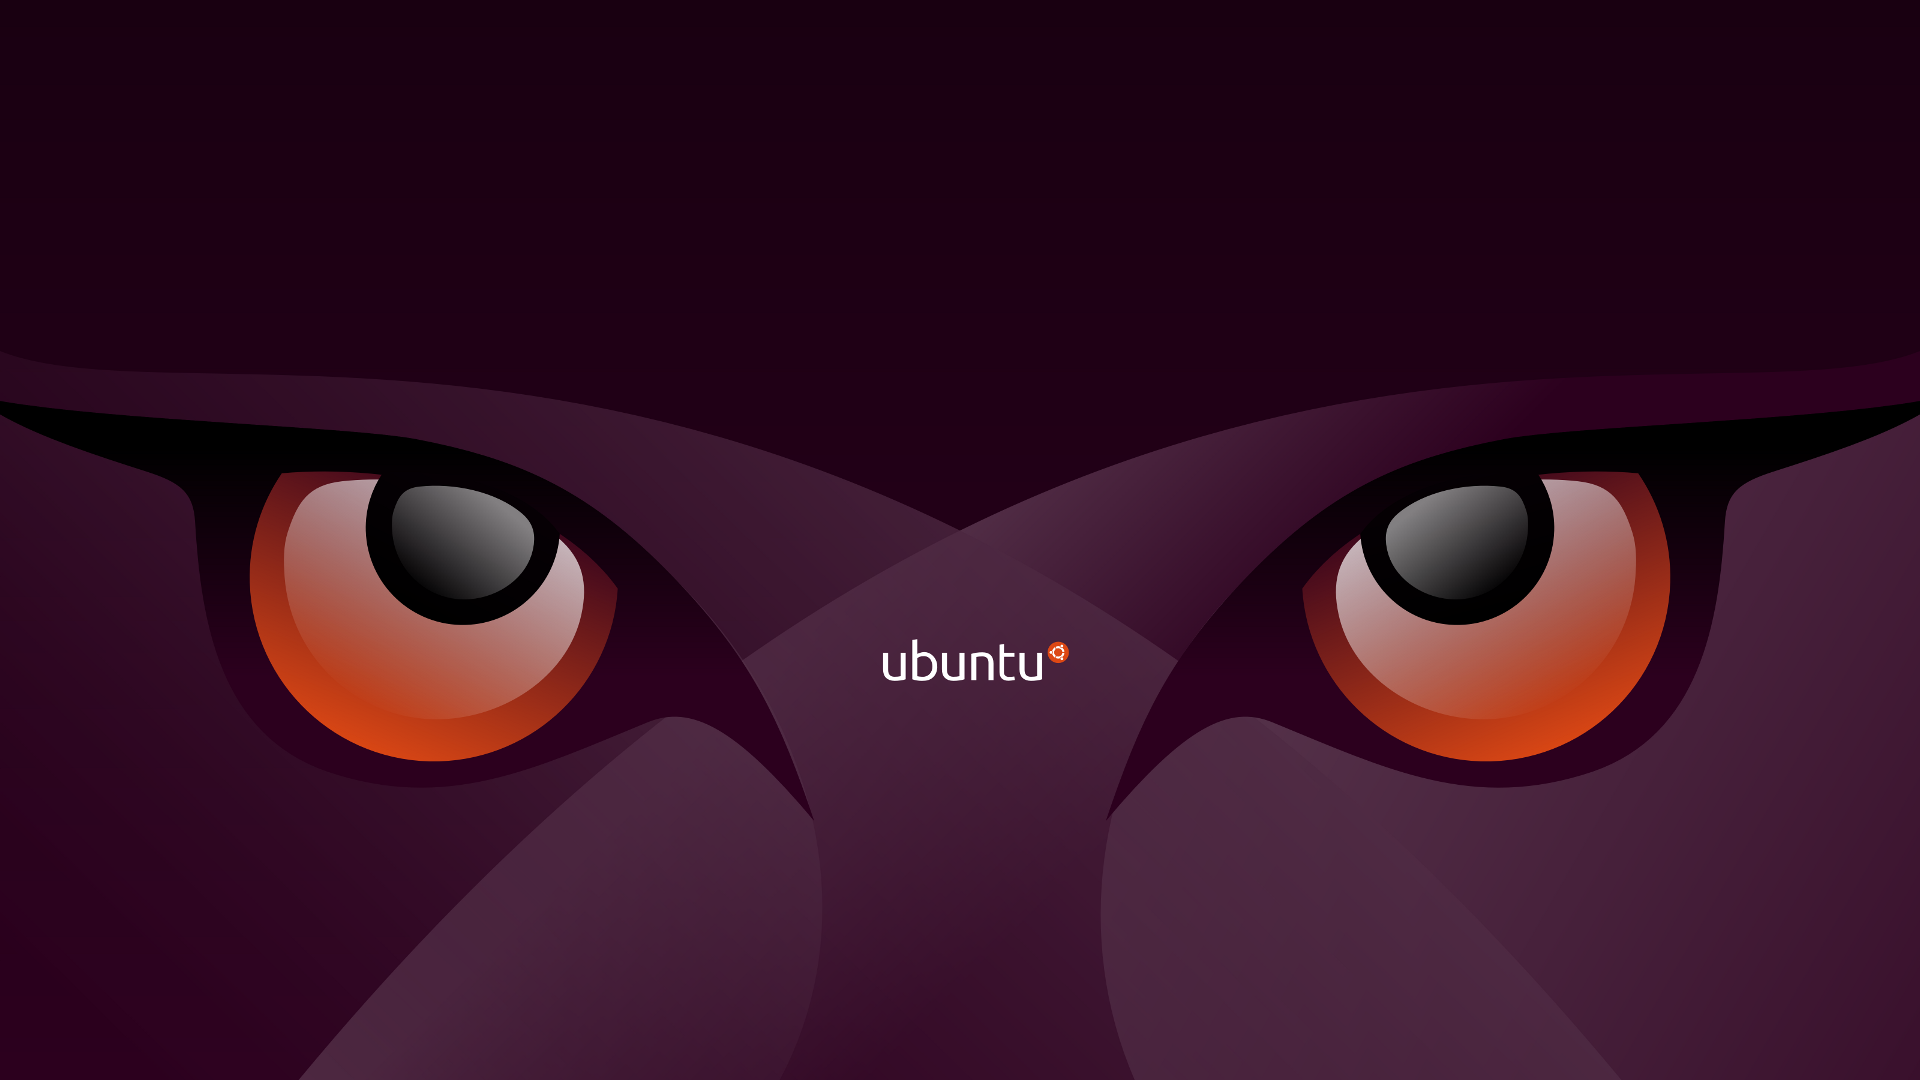 wallpapers hd de Linux